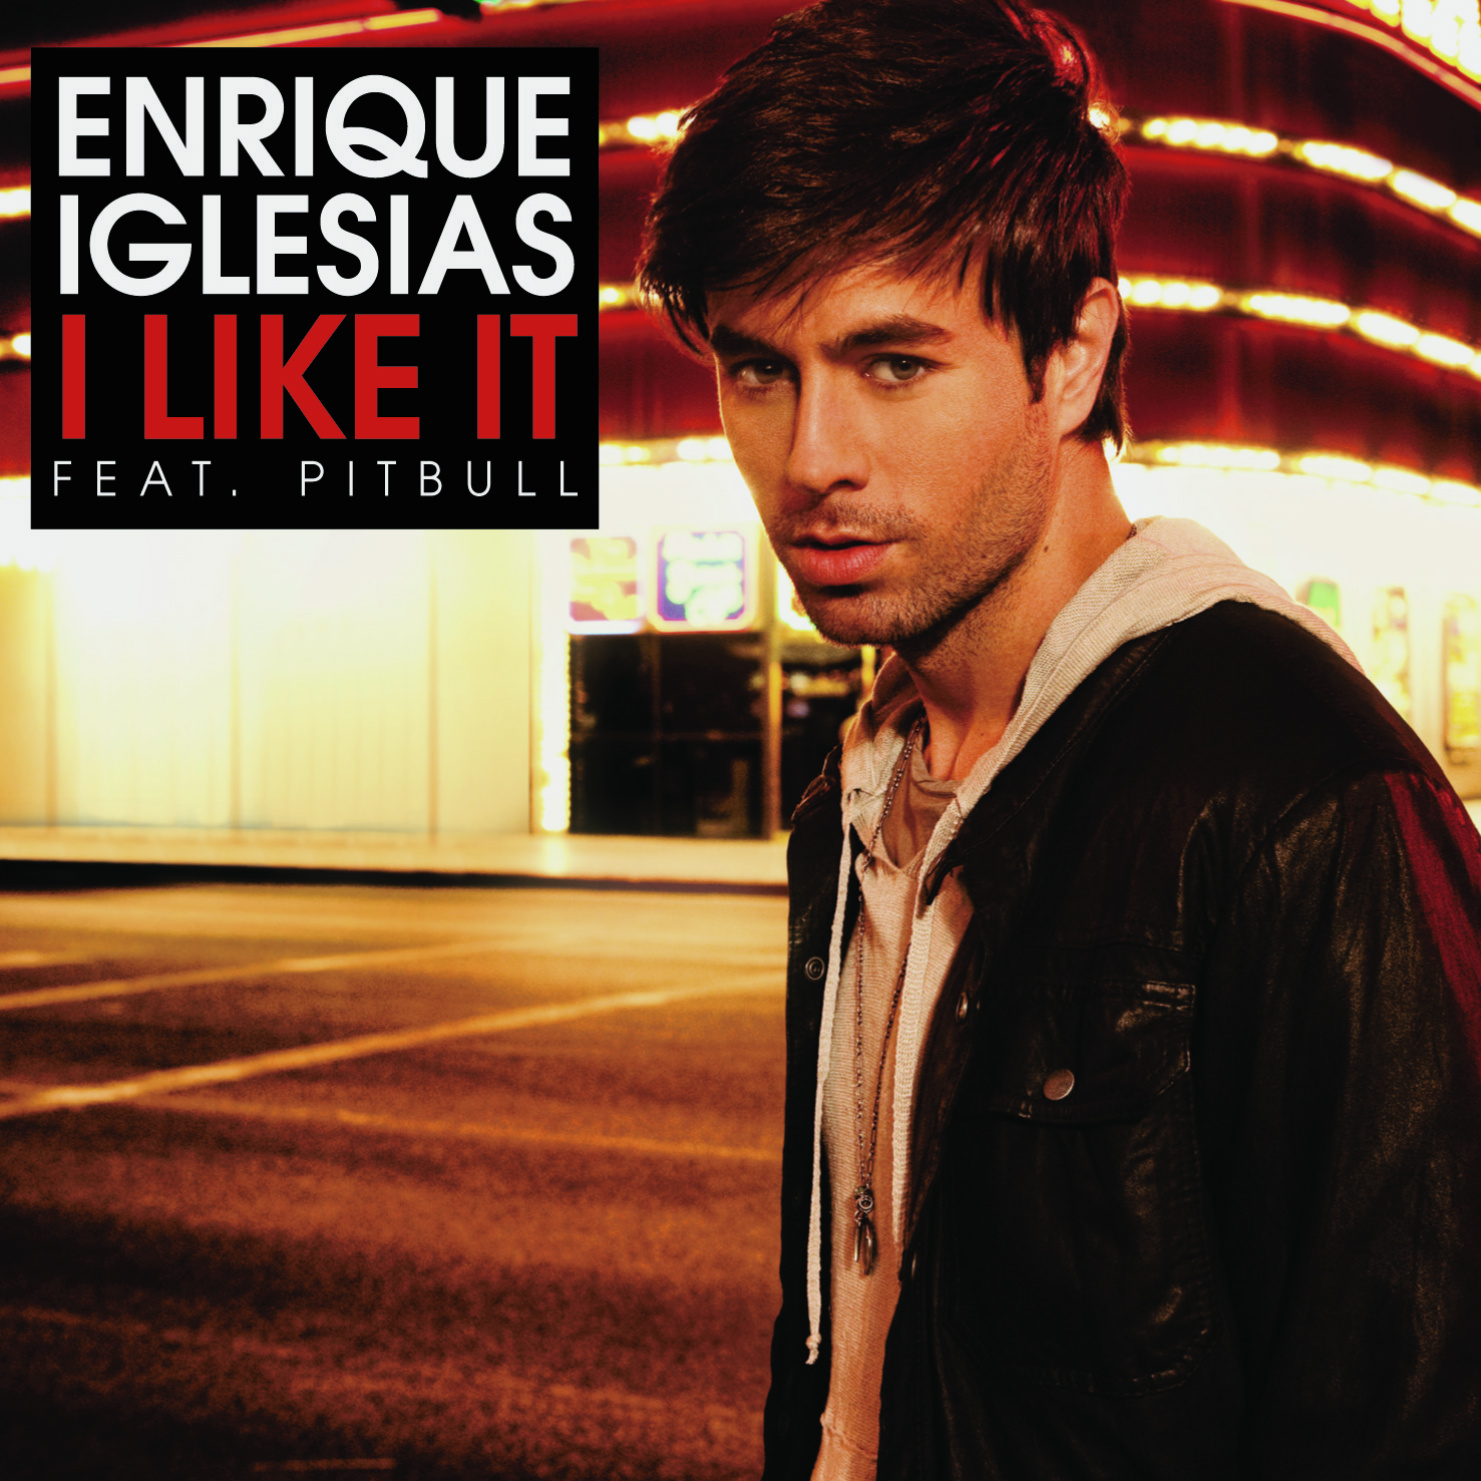 http://3.bp.blogspot.com/_mupIVJbjvuU/TBz3AK0IamI/AAAAAAAADm0/RiLk2VqPdhA/s1600/Enrique+Iglesias+-+I+Like+It+%20(Official+Single+Cover).jpg